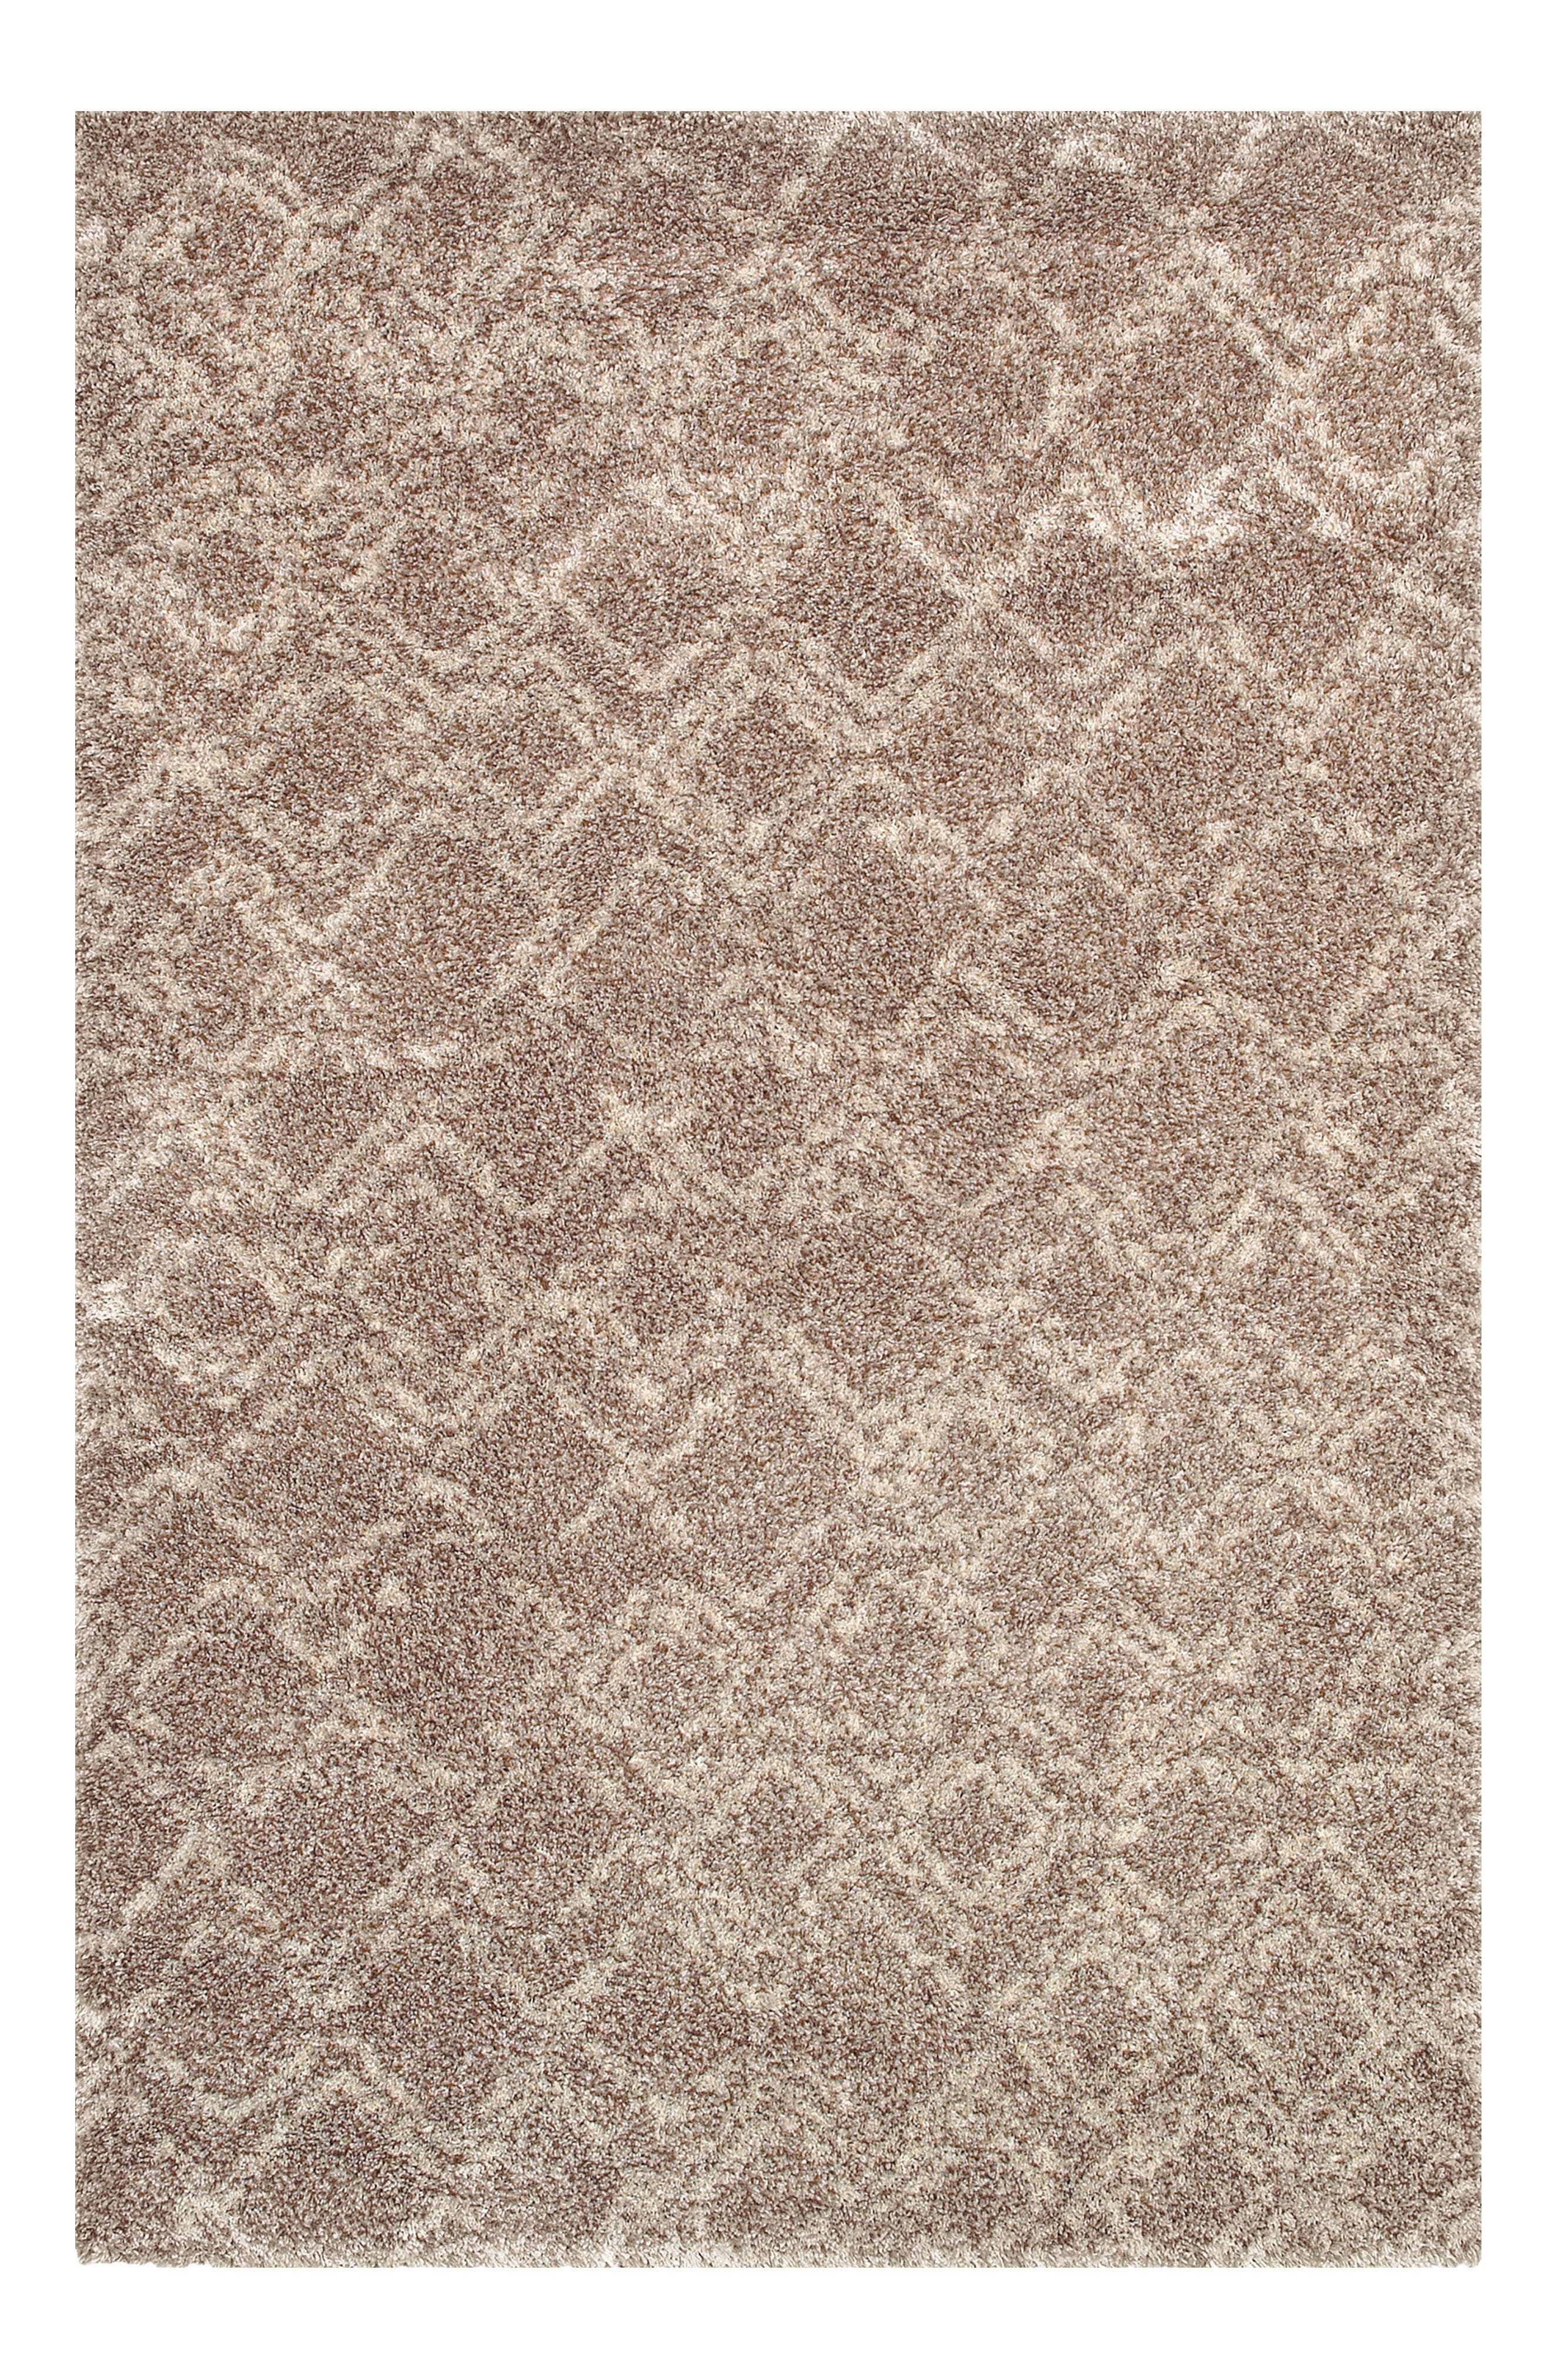 Alternate Image 1 Selected - Couristan Pinnacle Area Rug